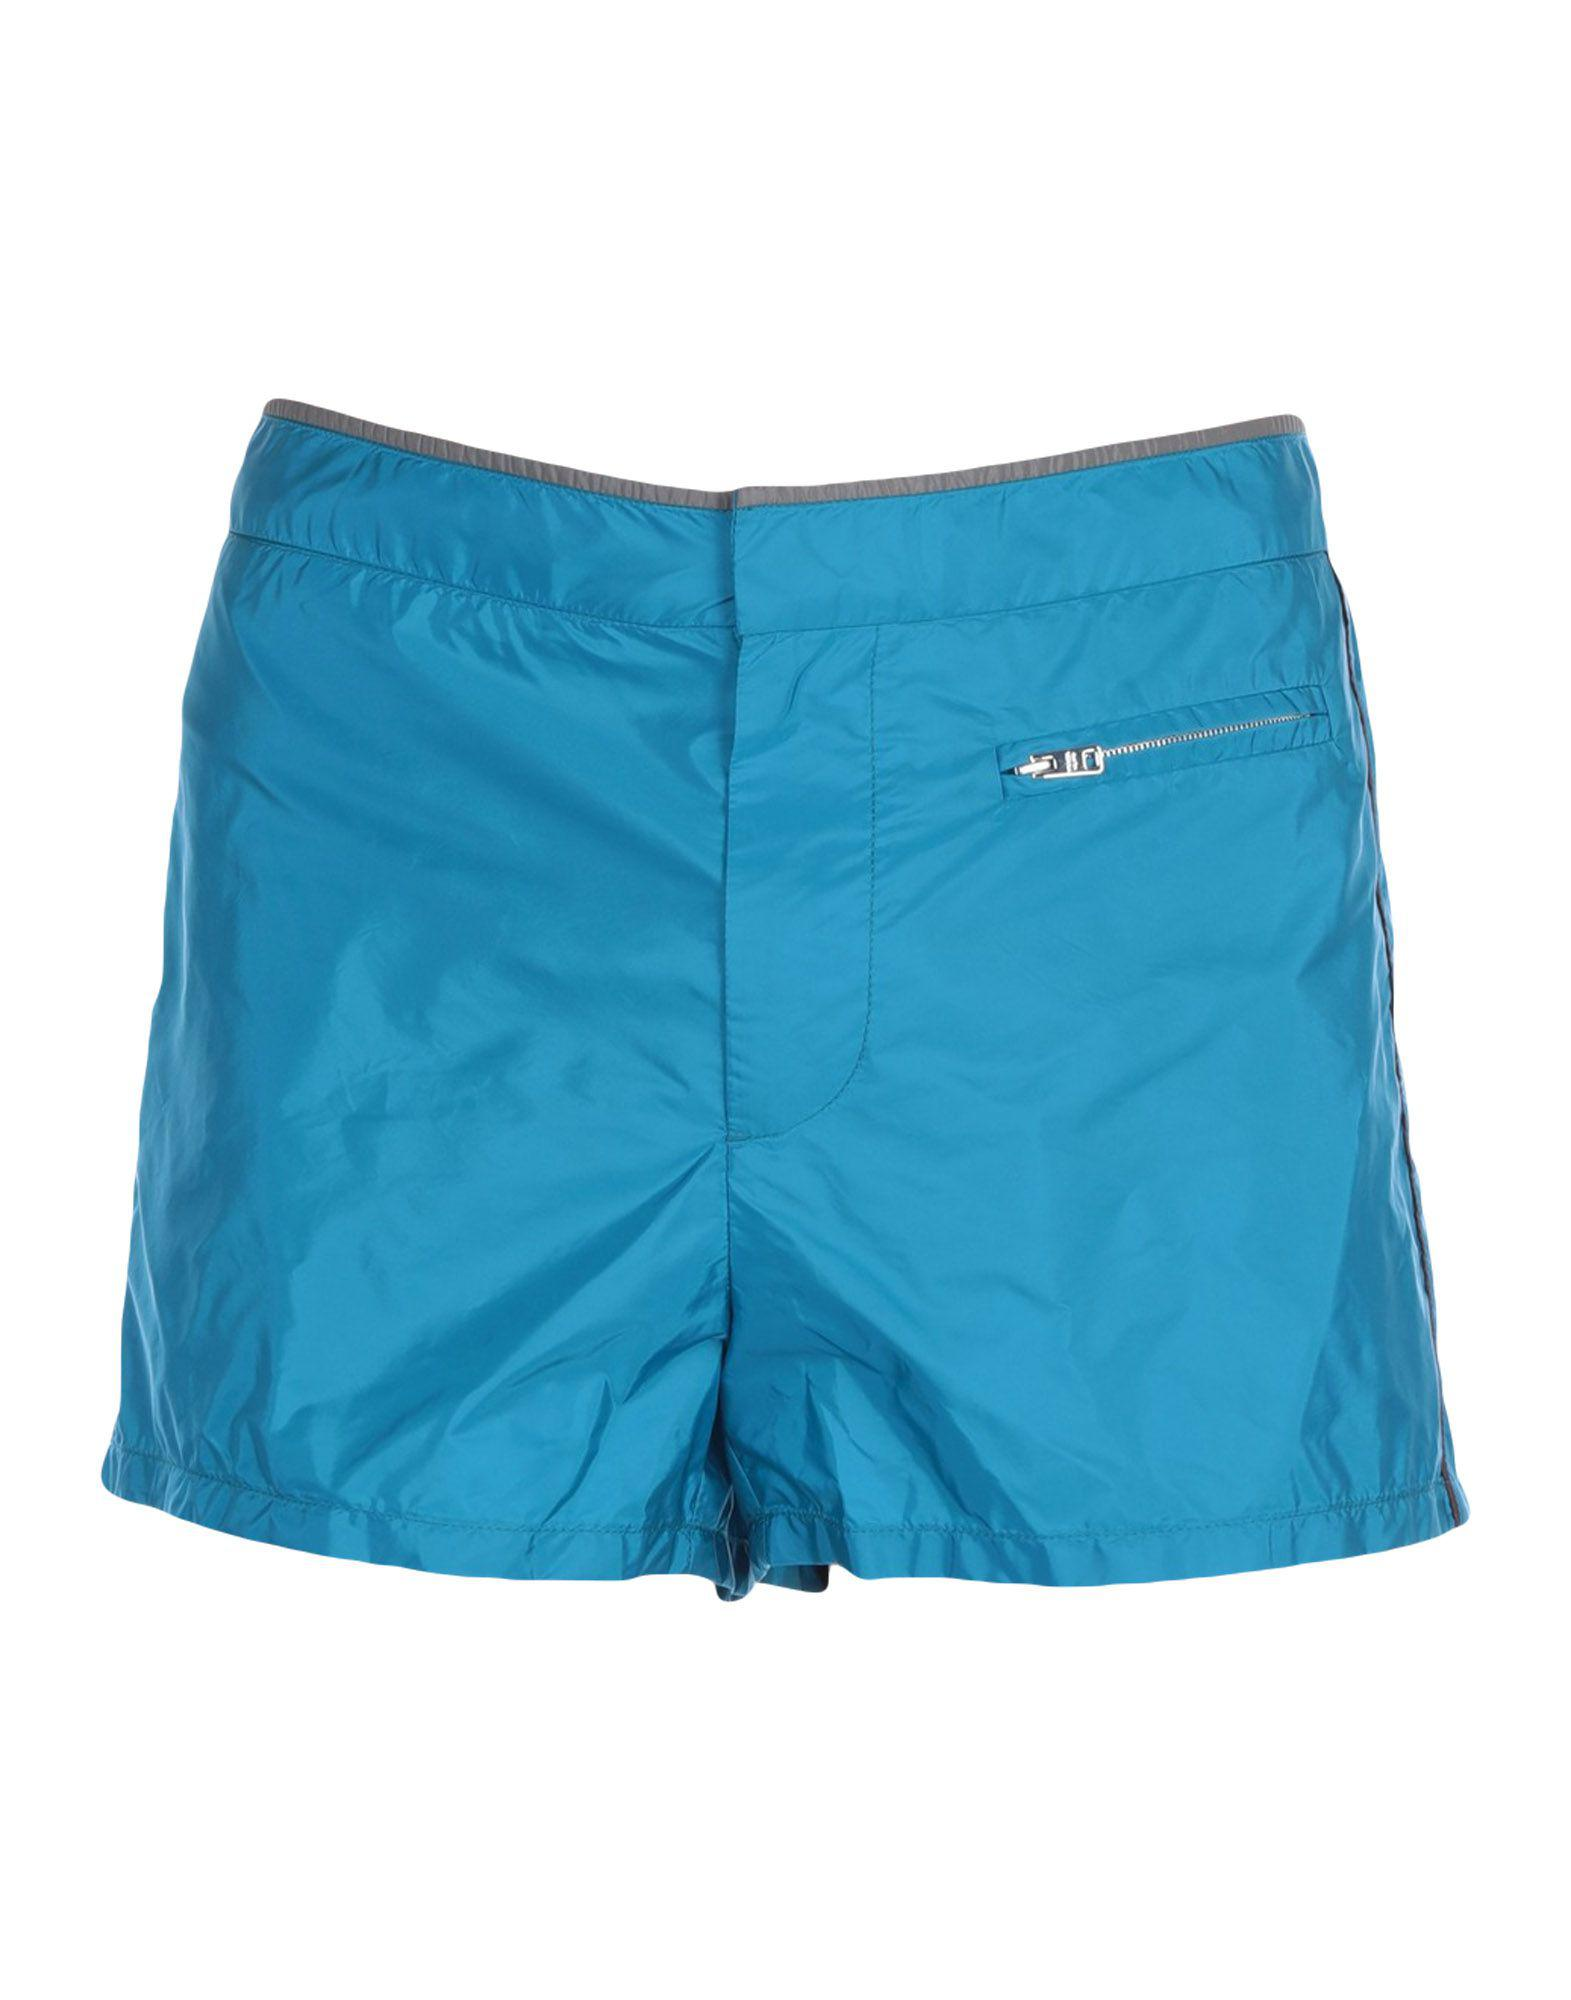 7ff595e27d Prada Swimming Trunks in Blue for Men - Lyst